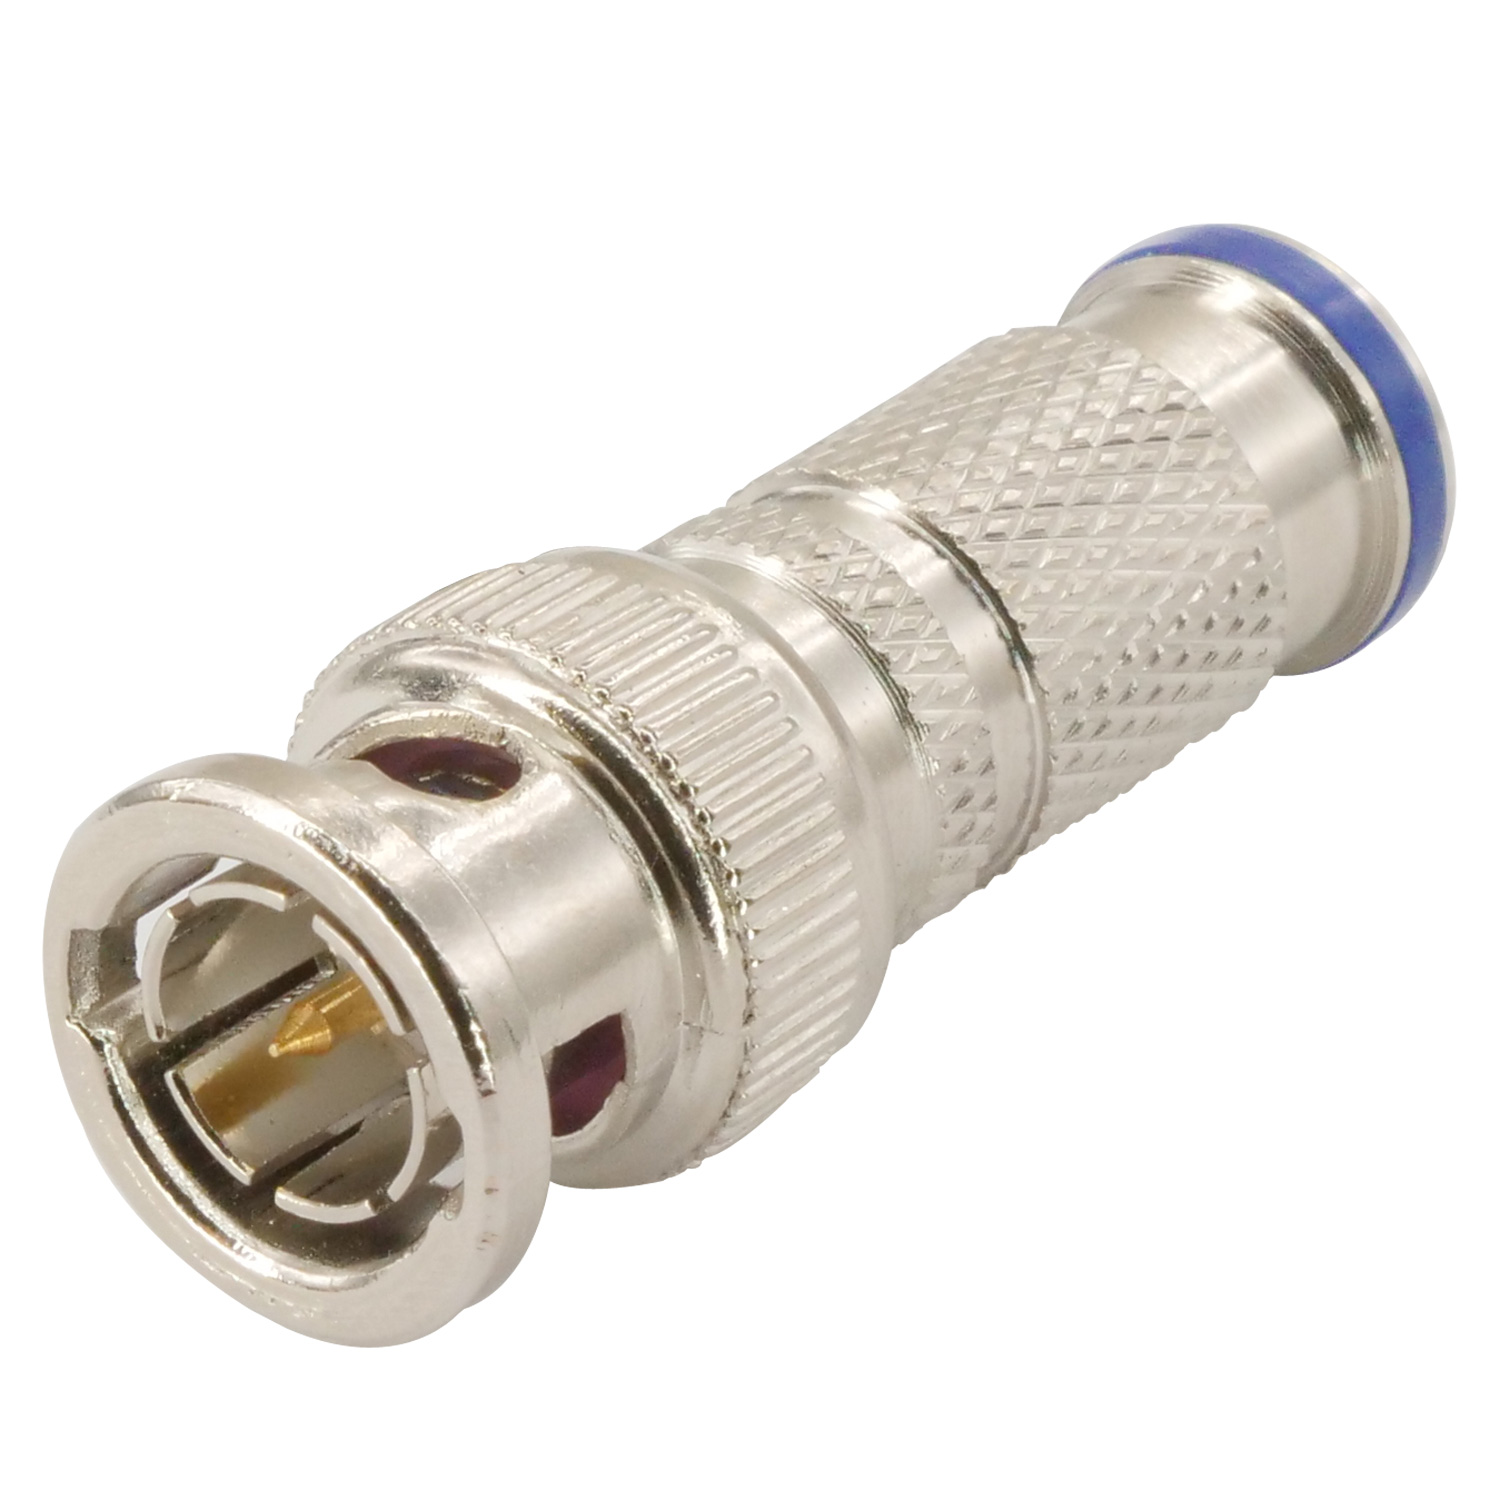 Weatherproof BNC Male Compression Type Connector for RG59/6 Coaxial ...